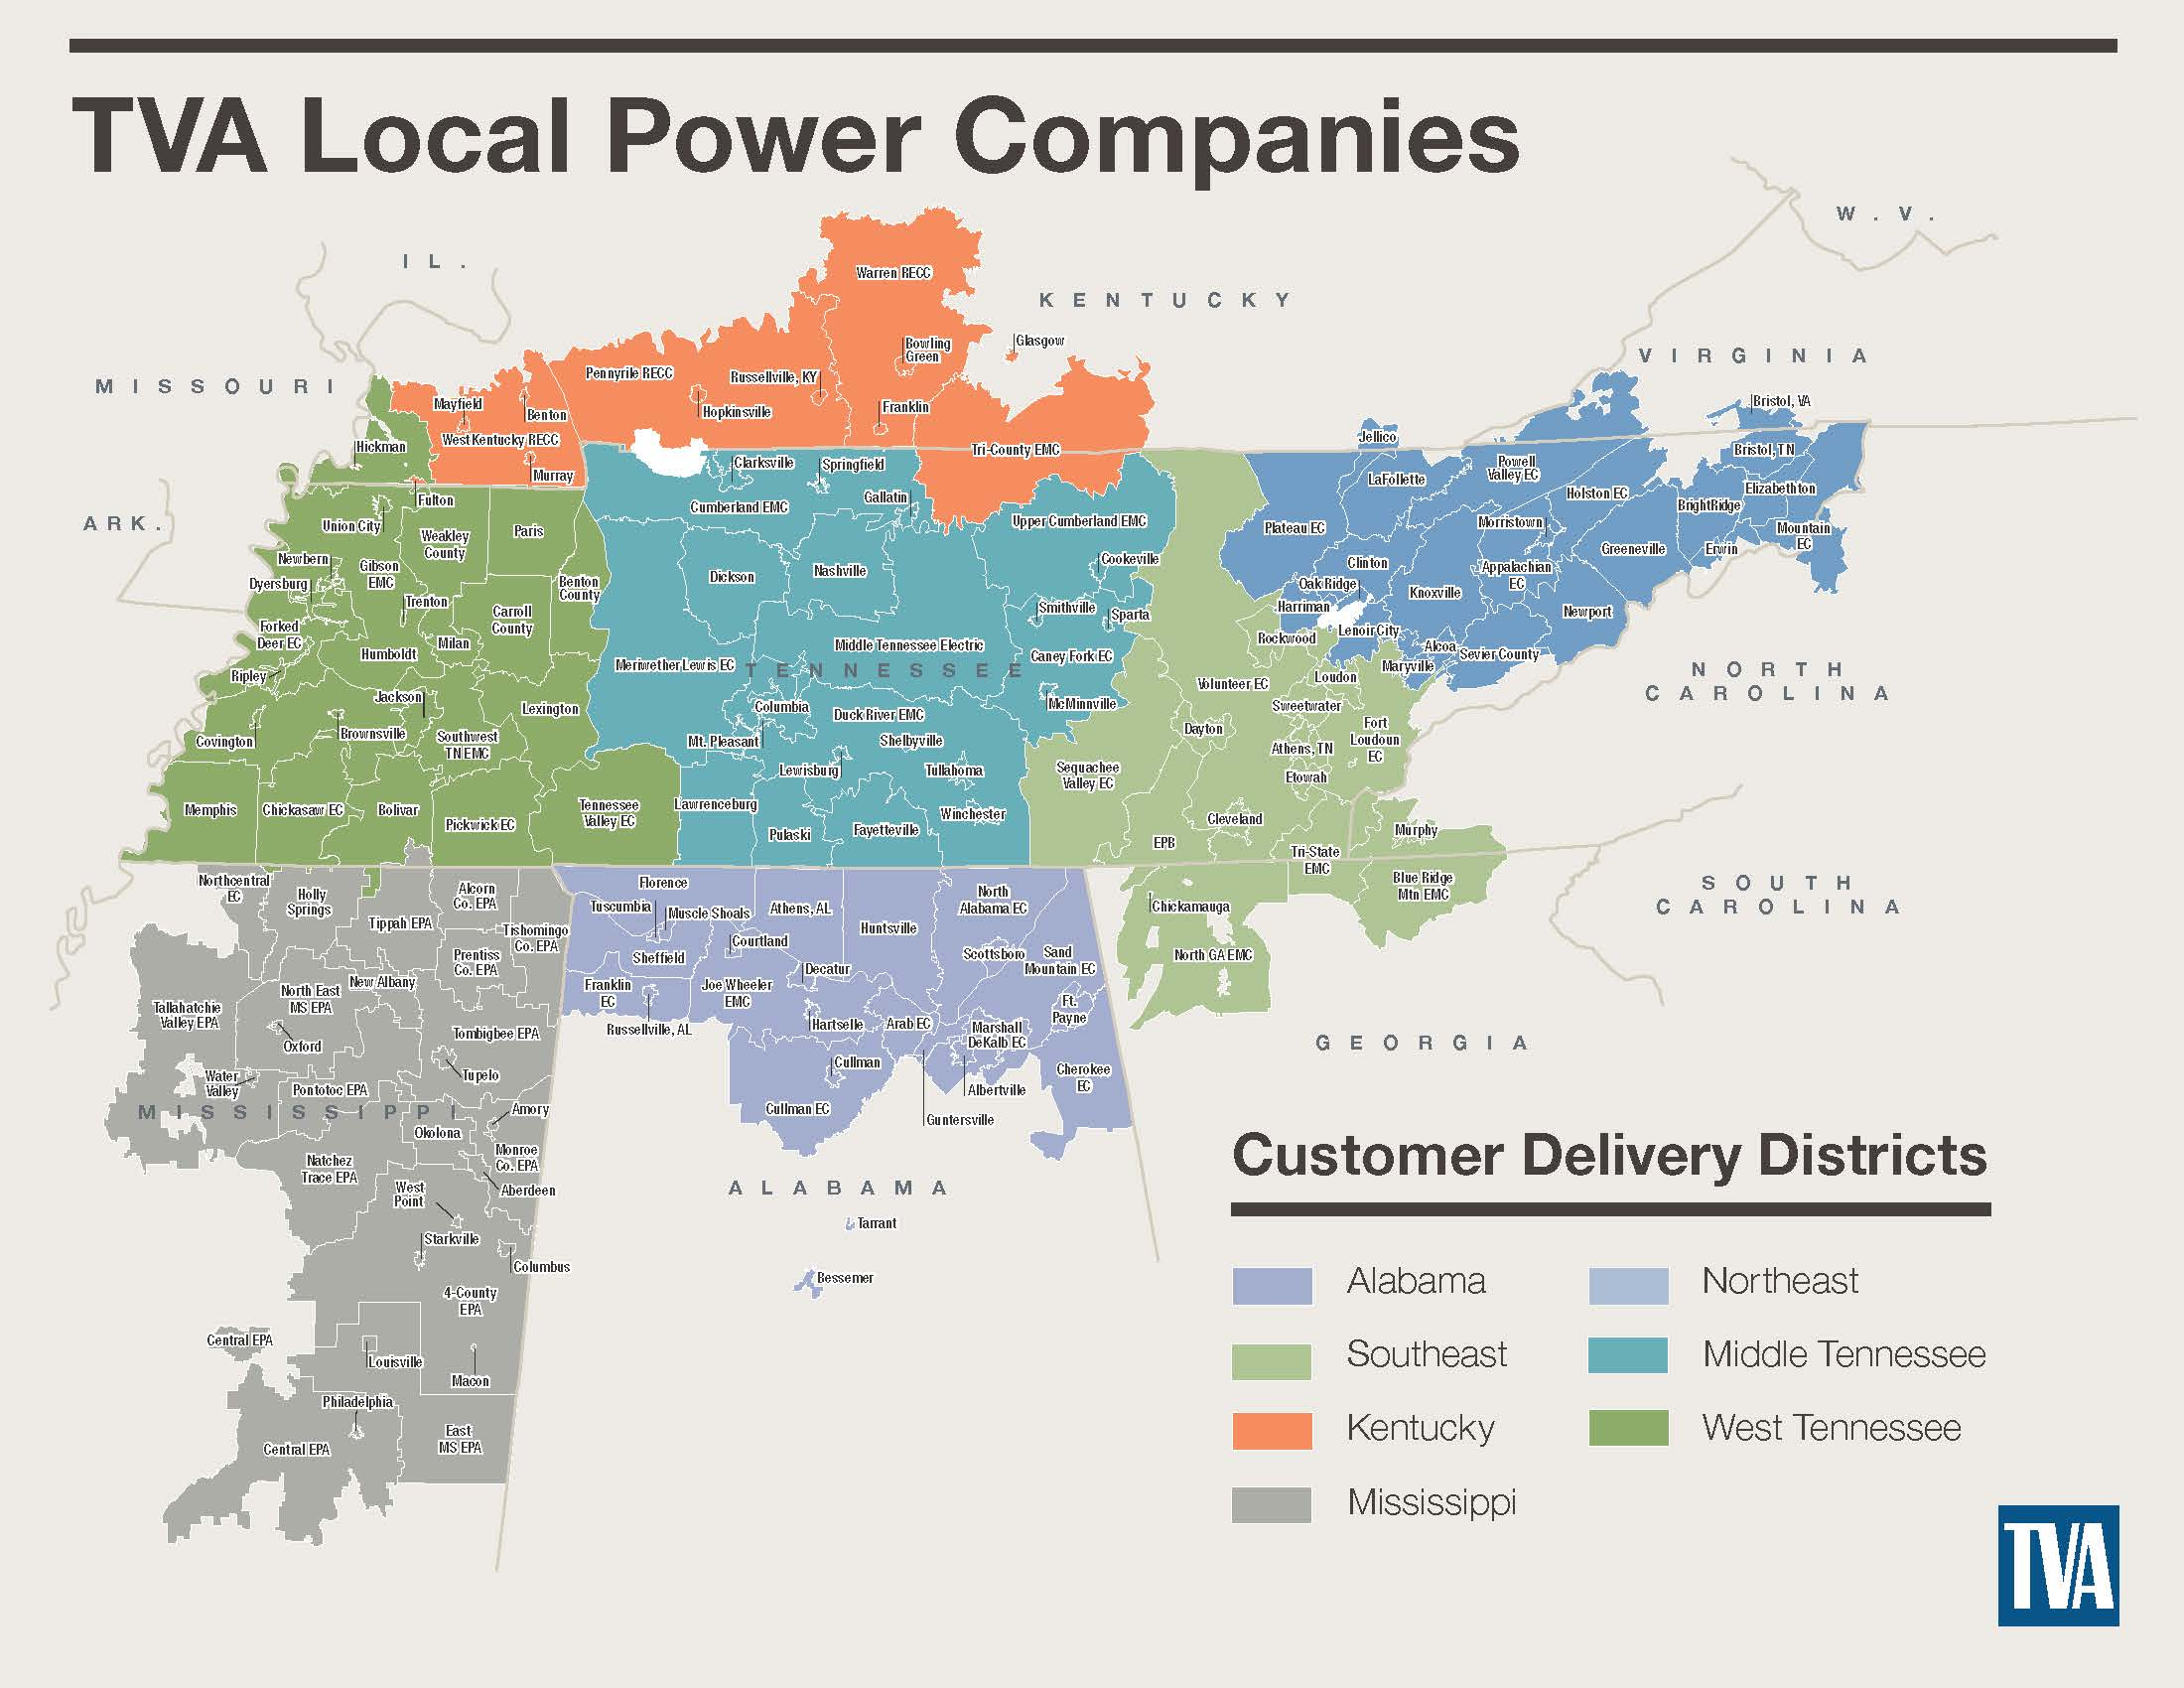 map of tva customer delivery districts